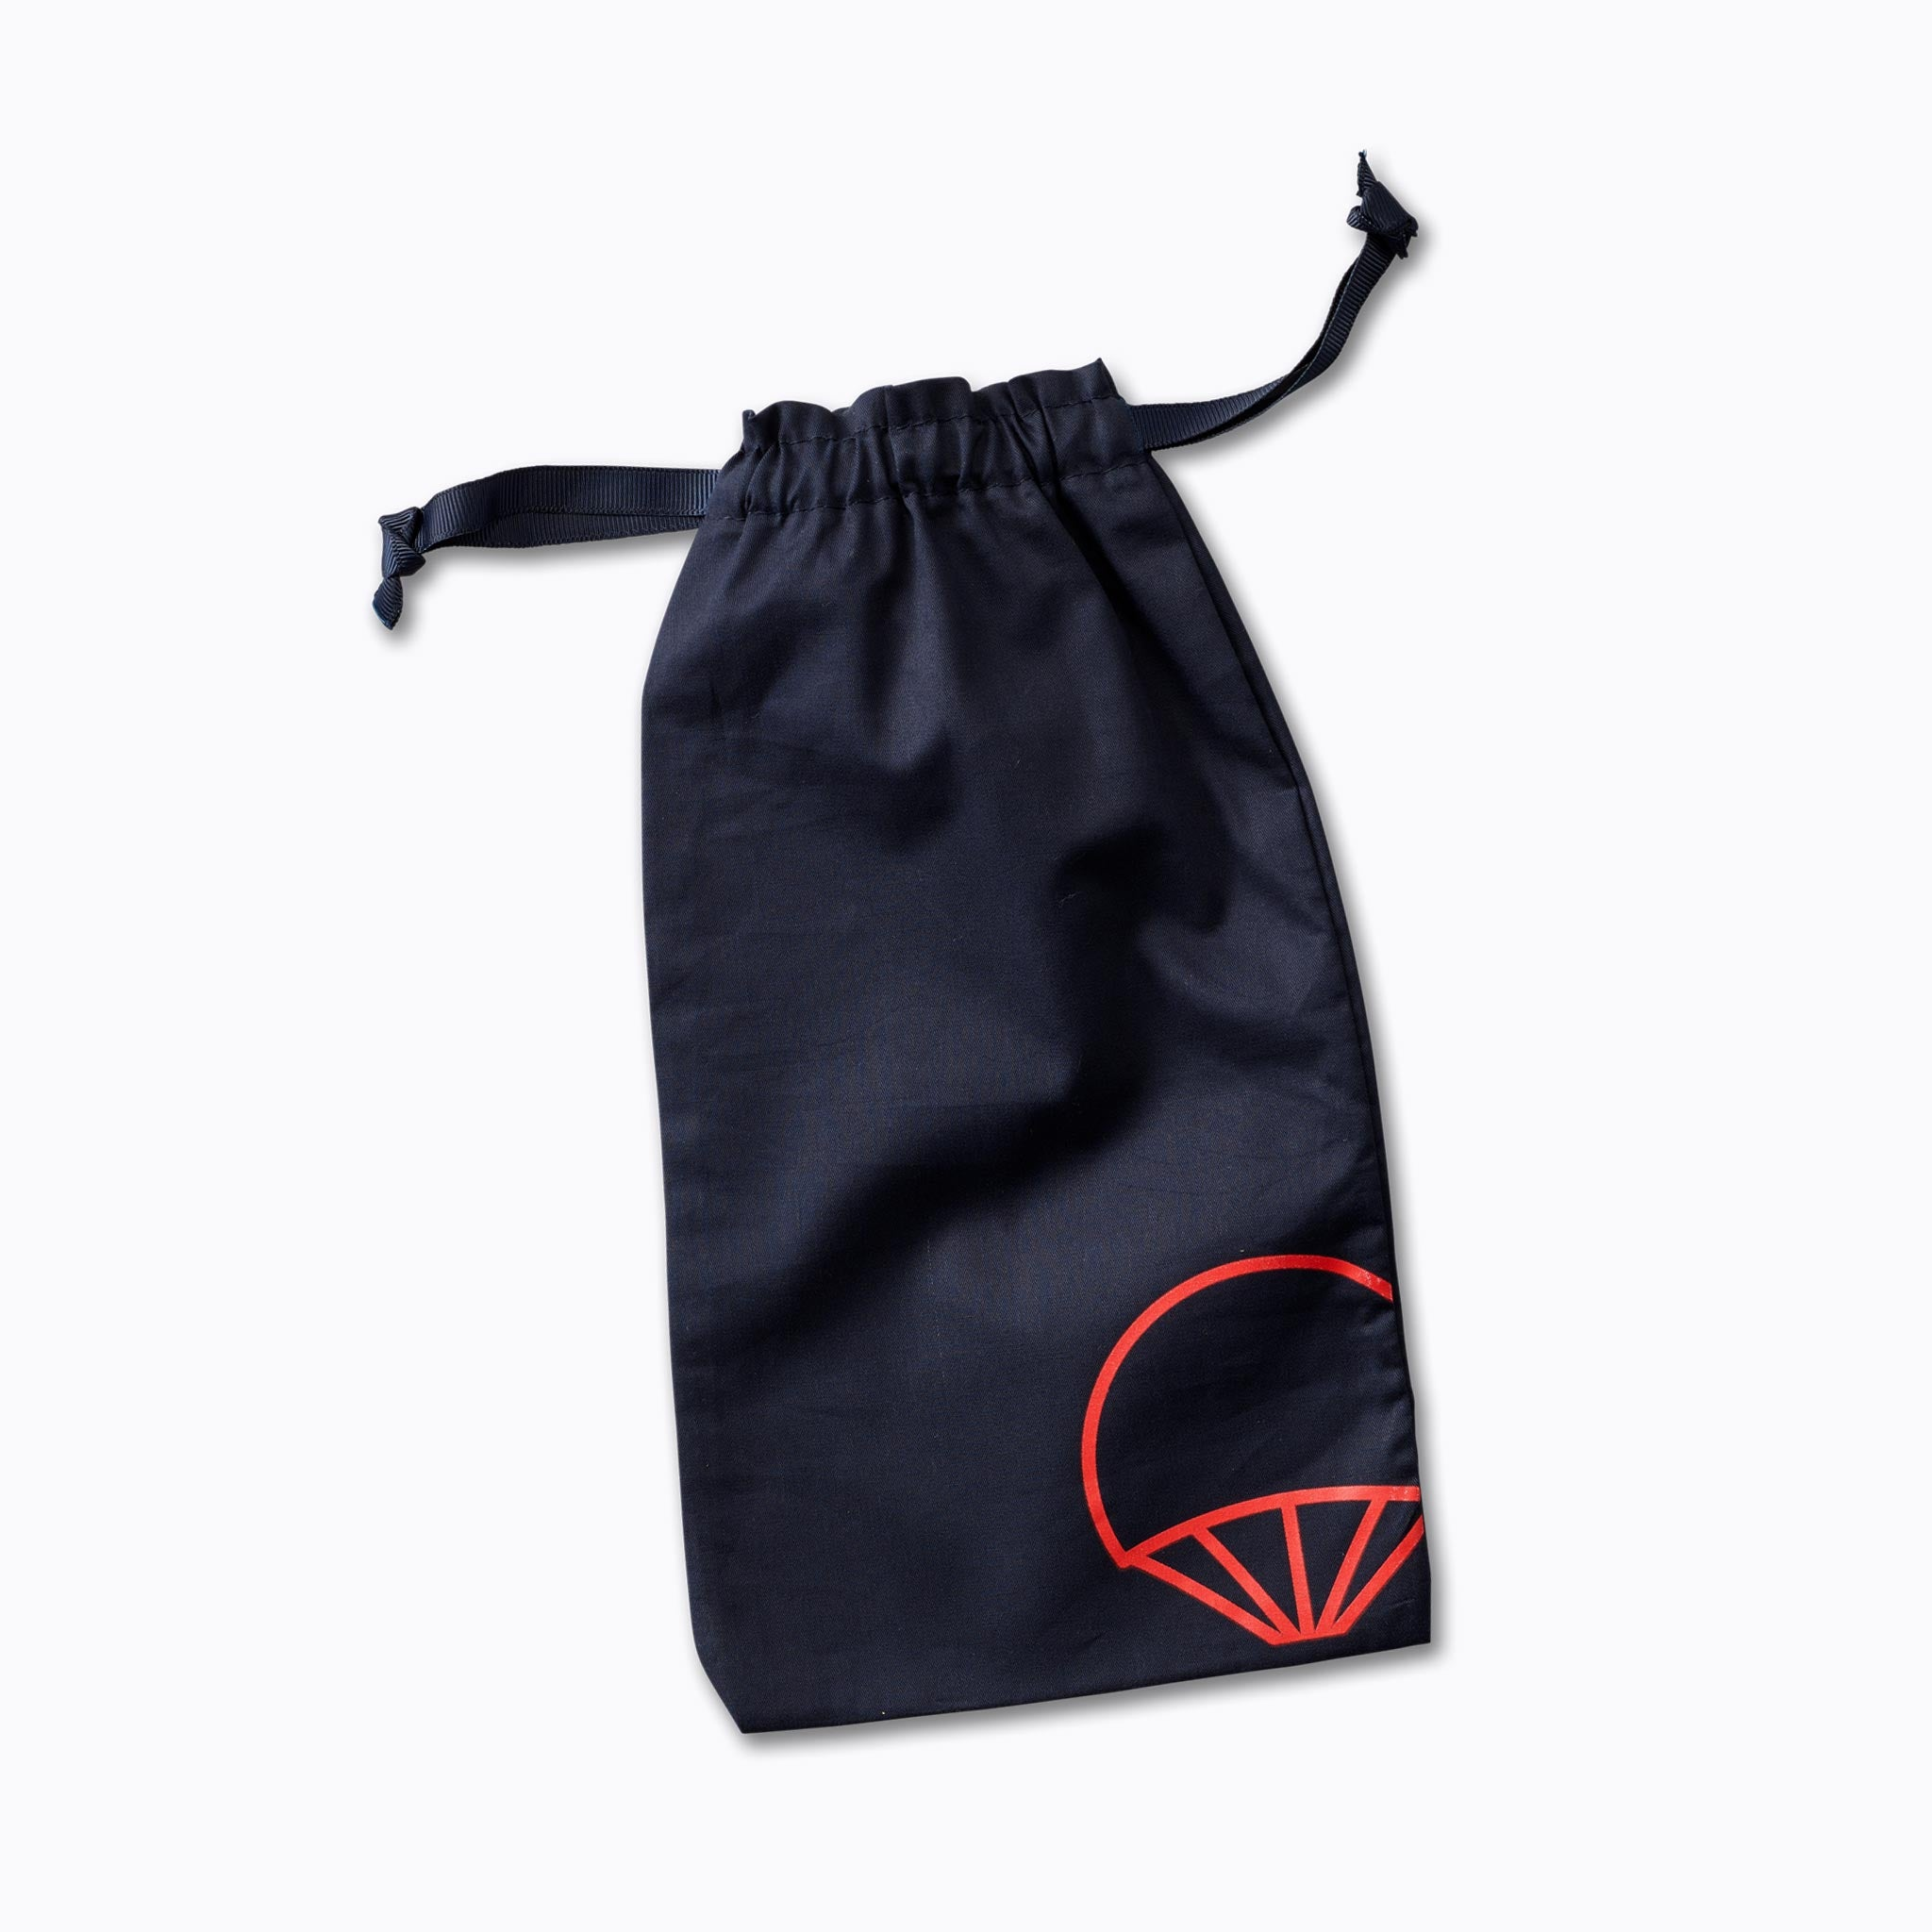 comrad travel laundry sock bag - free gift